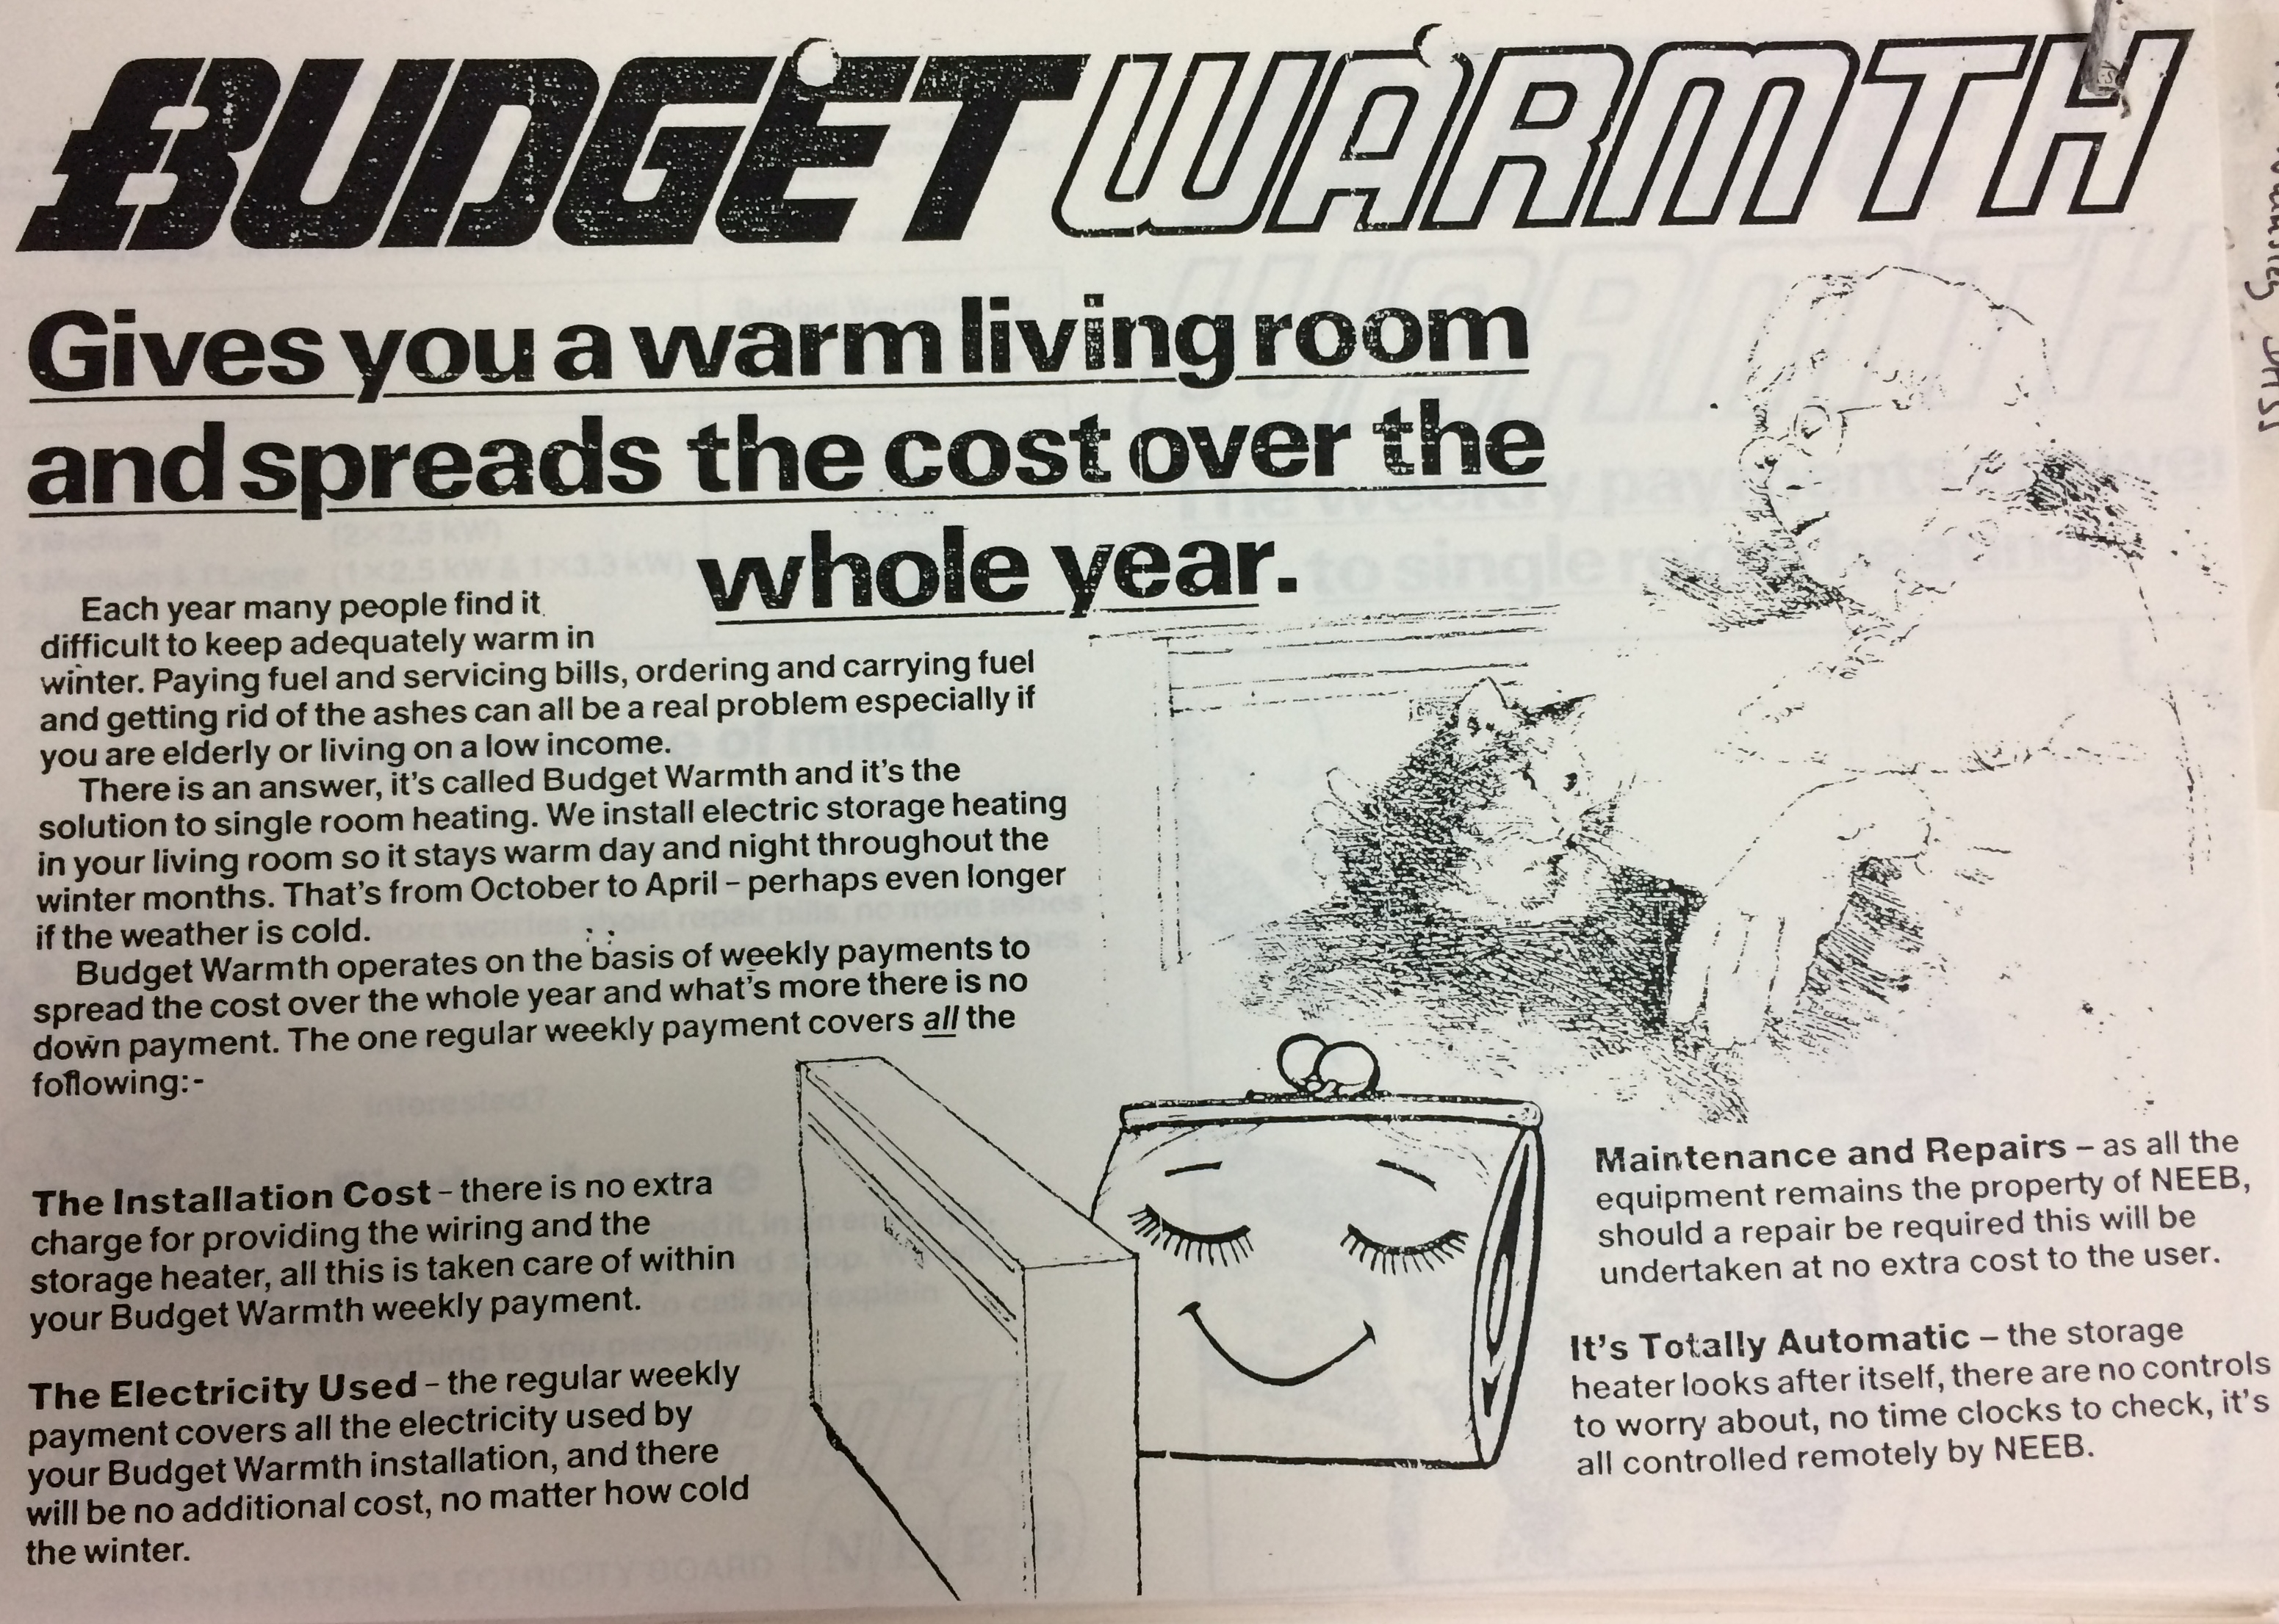 Figure 1: North Eastern Electricity Board leaflet promoting Budget Warmth (North Eastern Electricity Board, Box Number 146/157, 1986, National Archives, London) P. 9